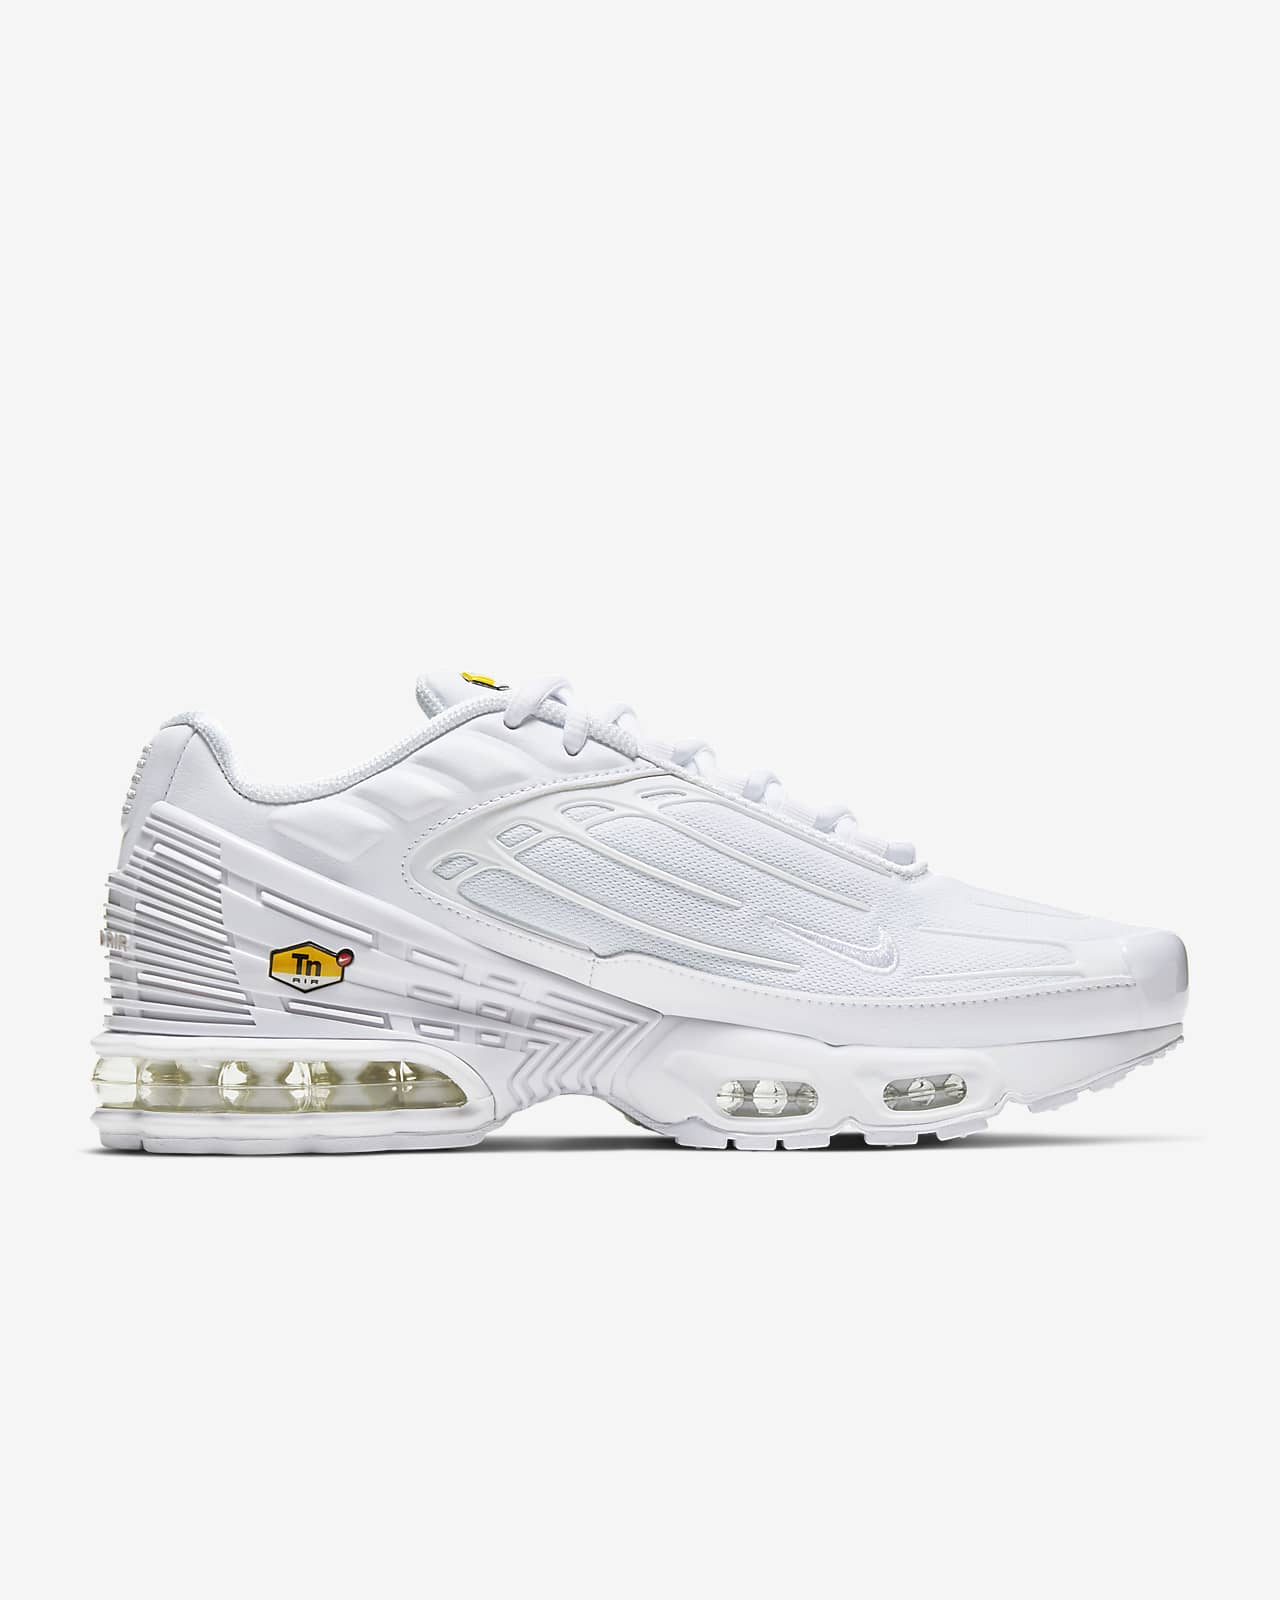 Nike Tn 3 Online Deals, UP TO 57% OFF